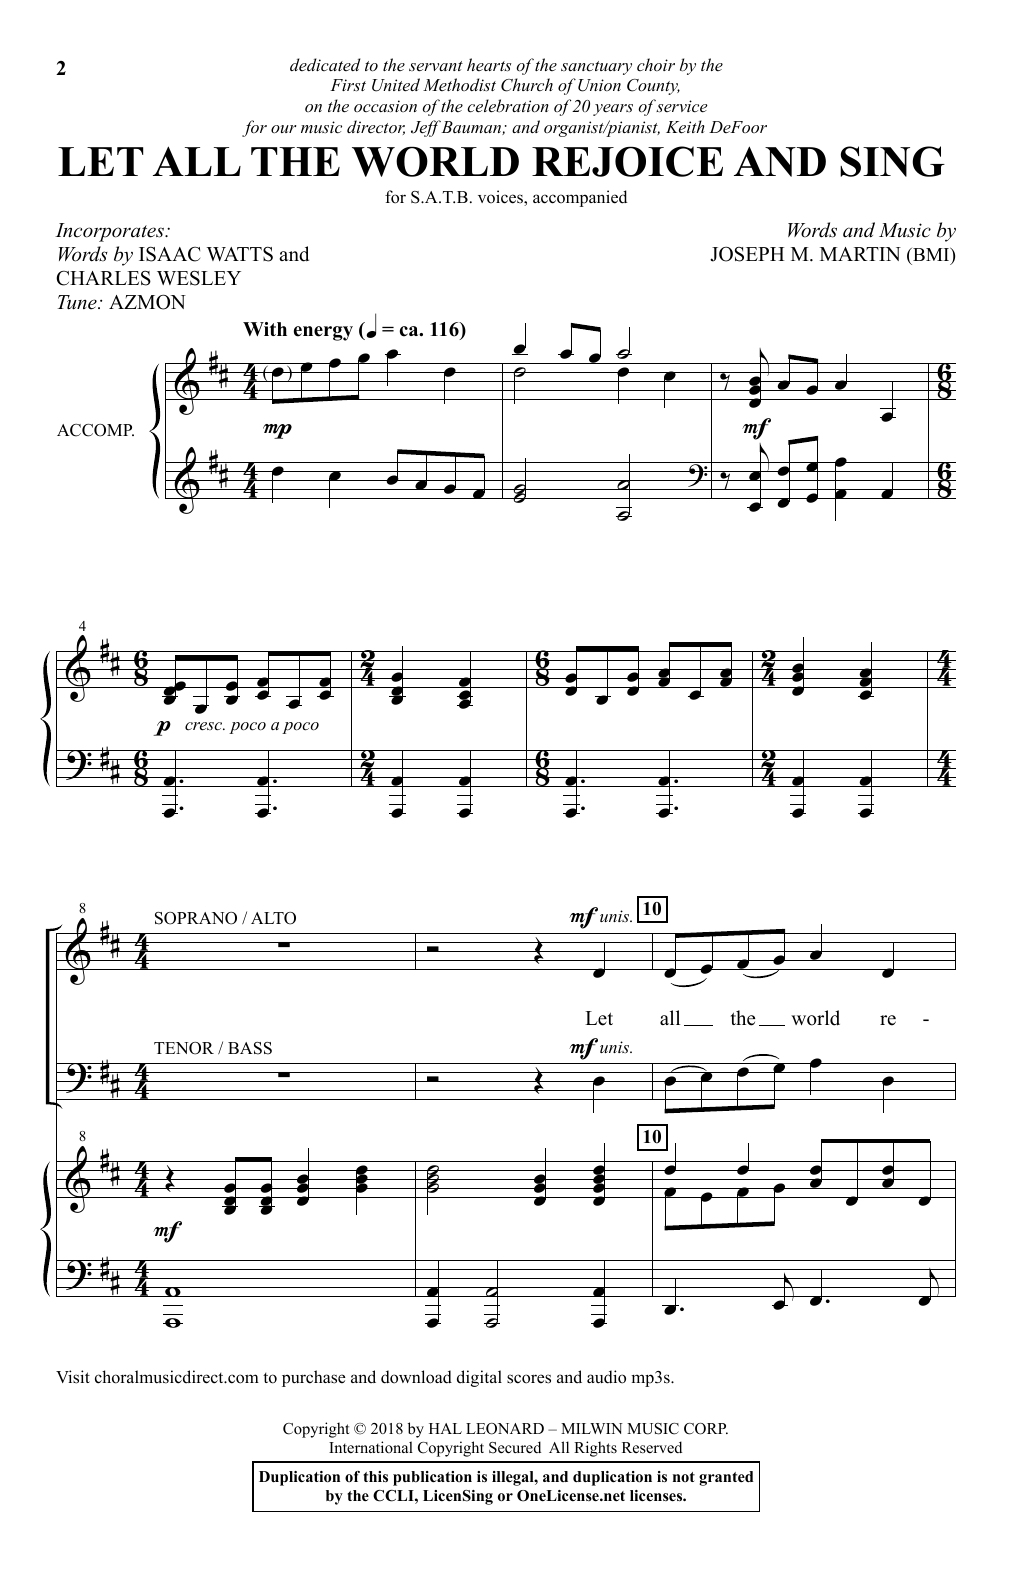 Let All The World Rejoice And Sing (SATB Choir)